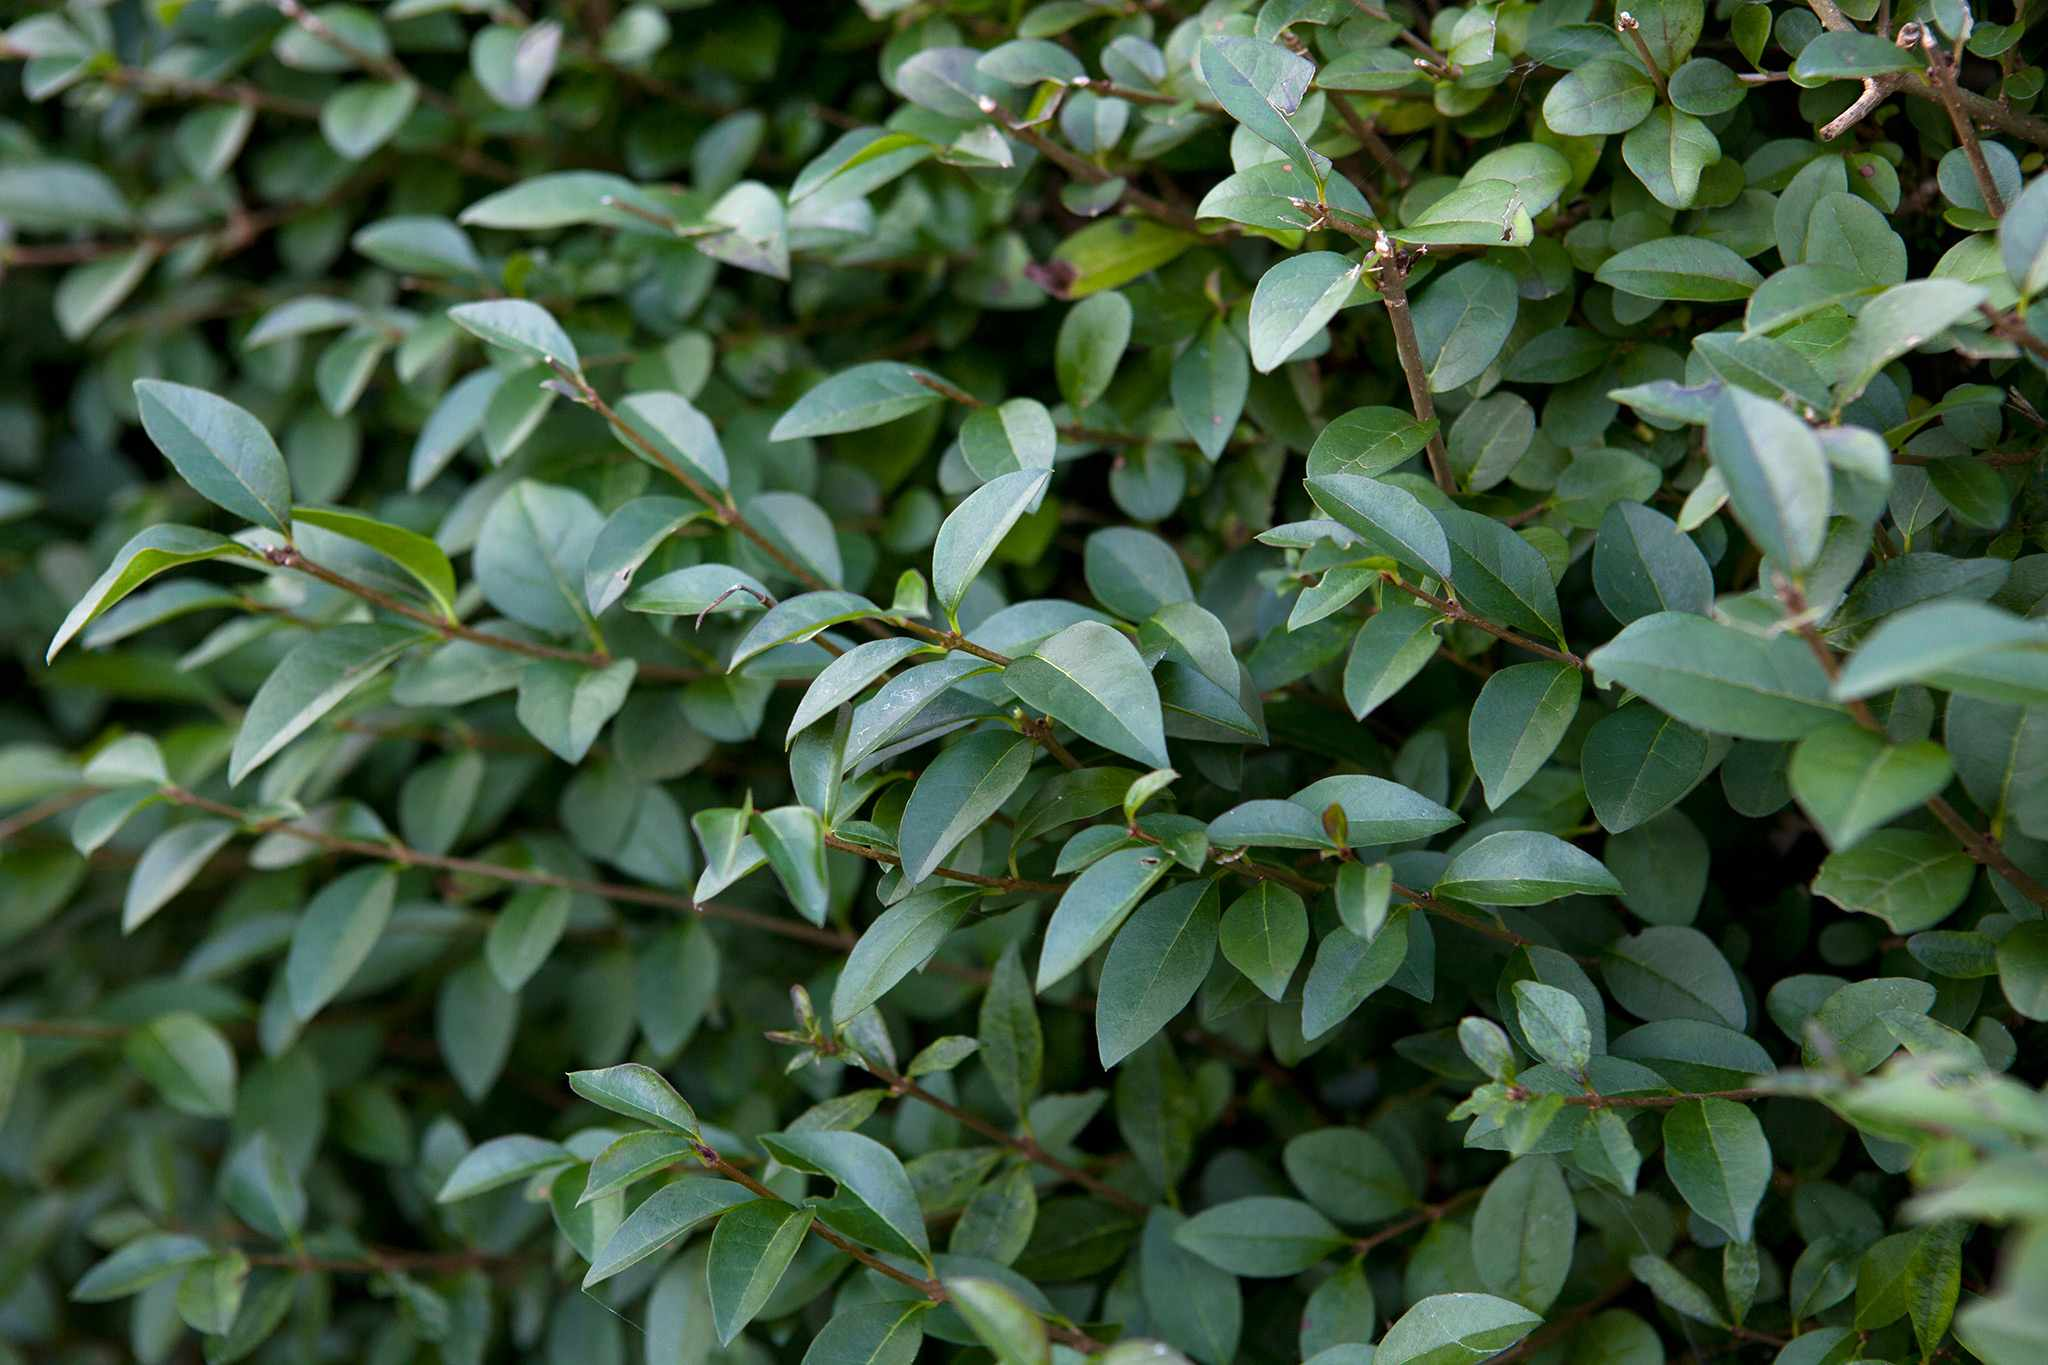 Chinese privet (Ligustrum sinsense) hedge